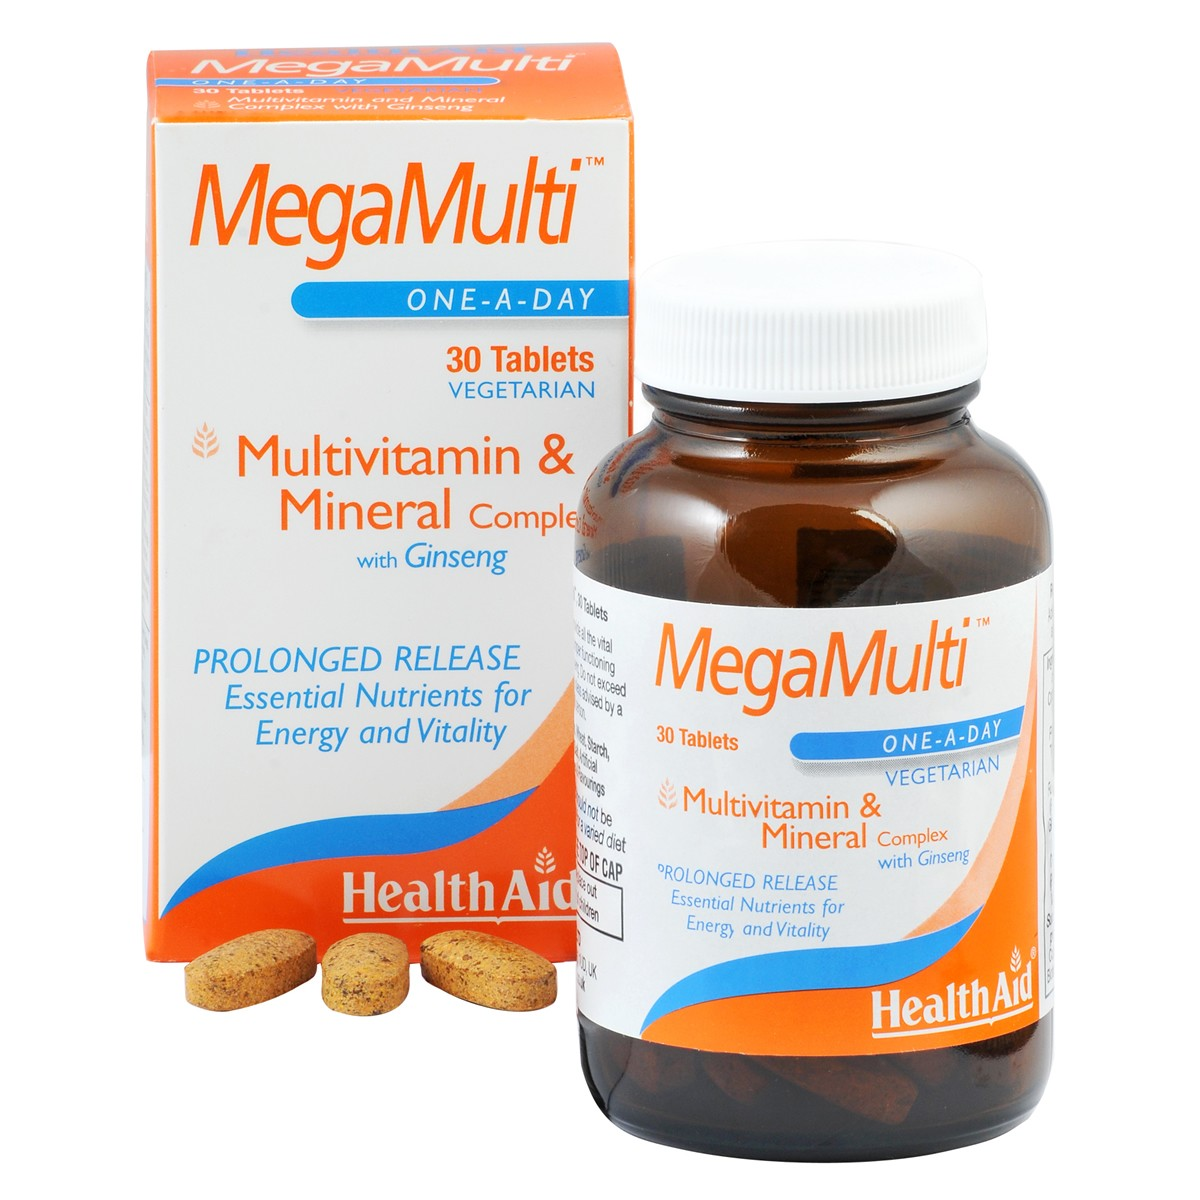 HealthAid Mega-Multi's (with Ginseng)